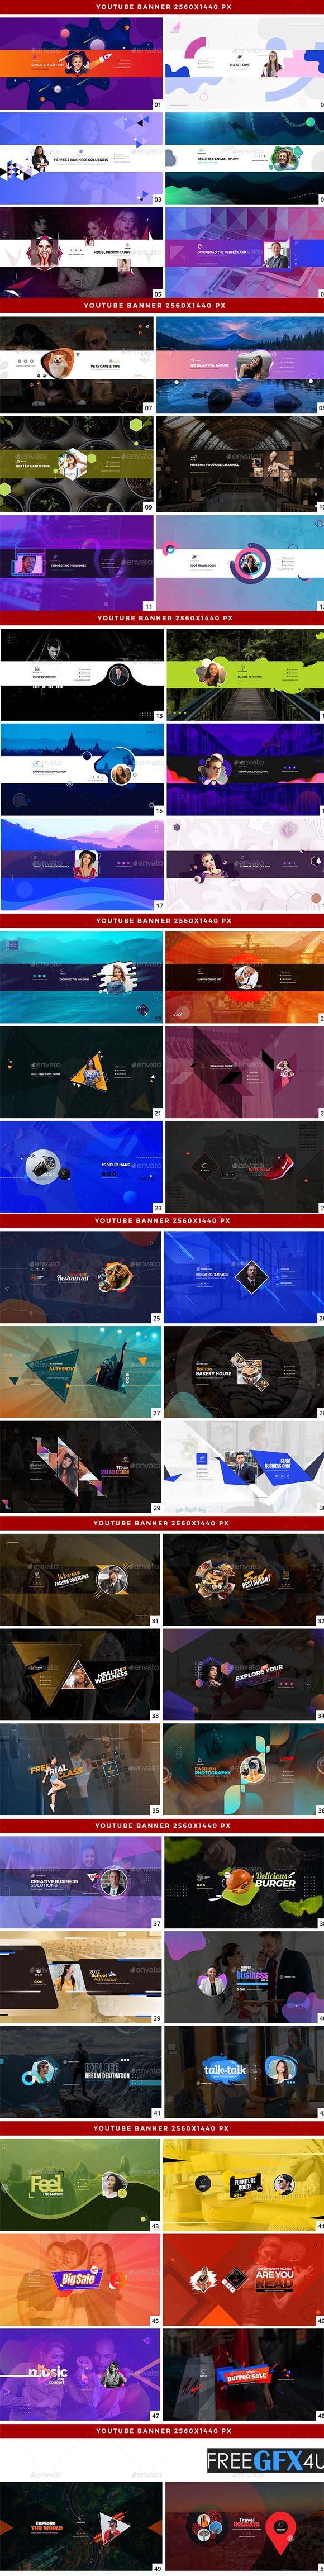 50 YouTube Cover Banners Free Download